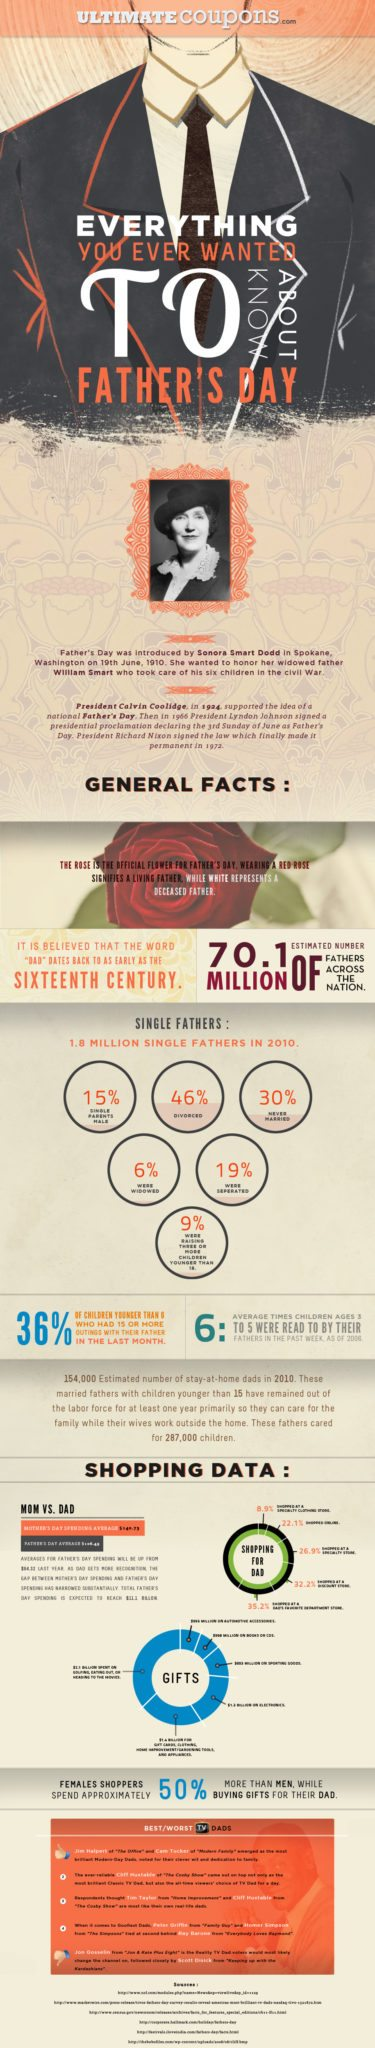 Everything About Father's Day [infographic] 1